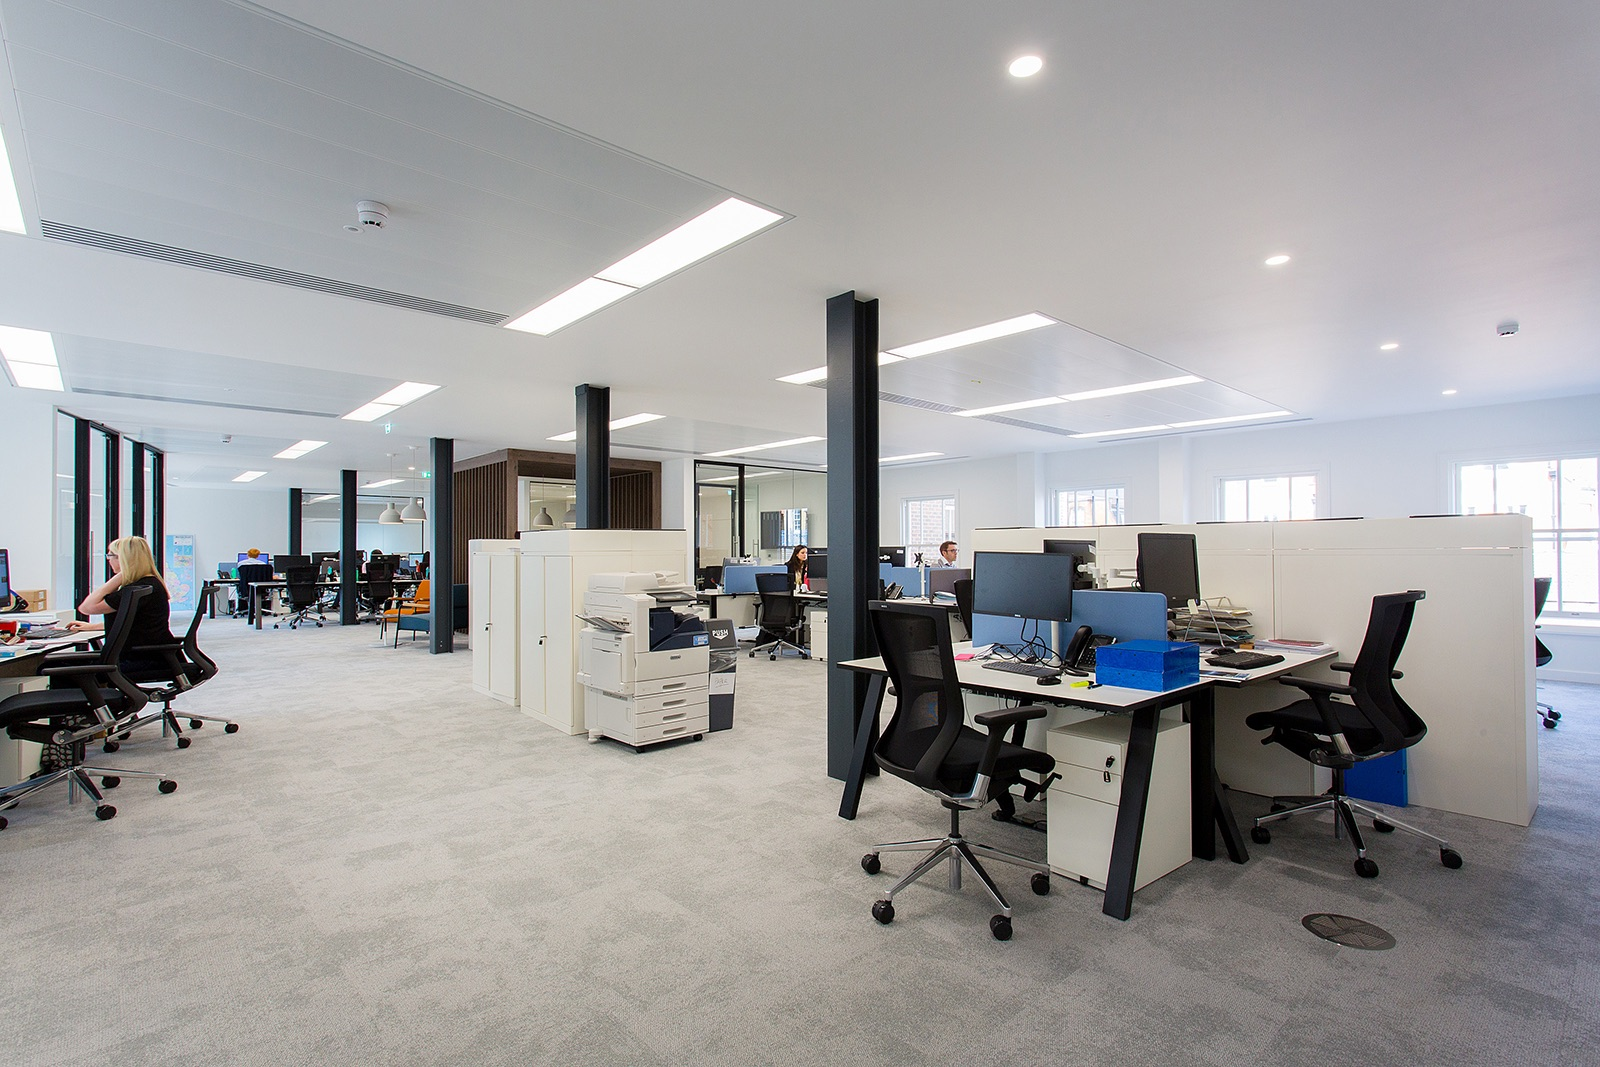 woodford-london-office-14